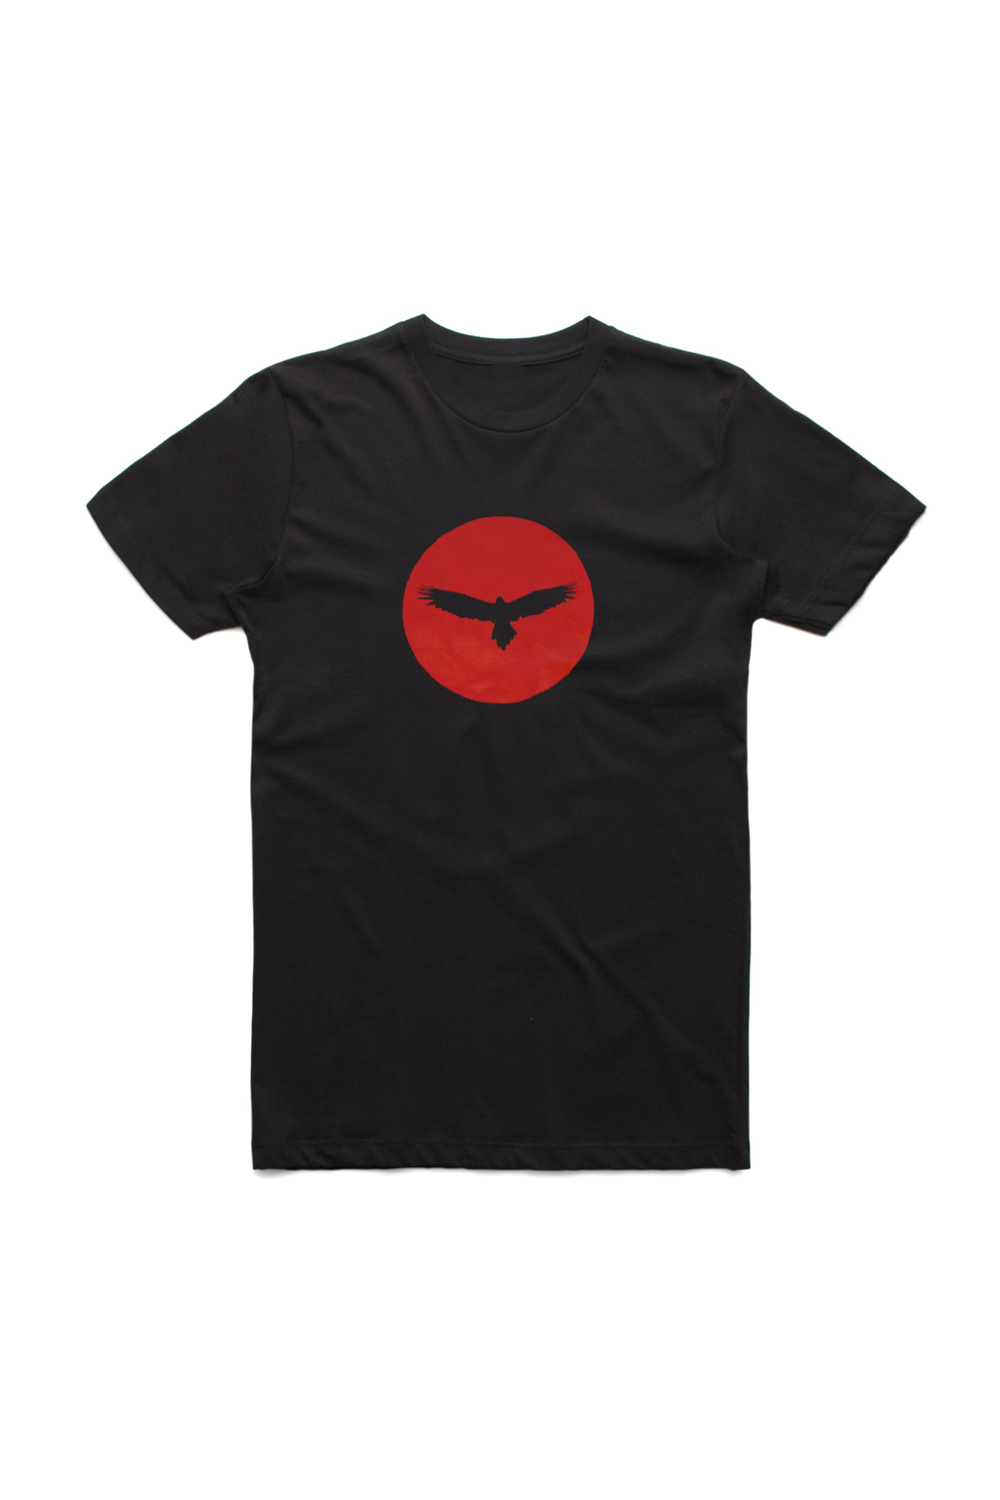 Adrian Eagle Adrian Eagle Official Merchandise Band T